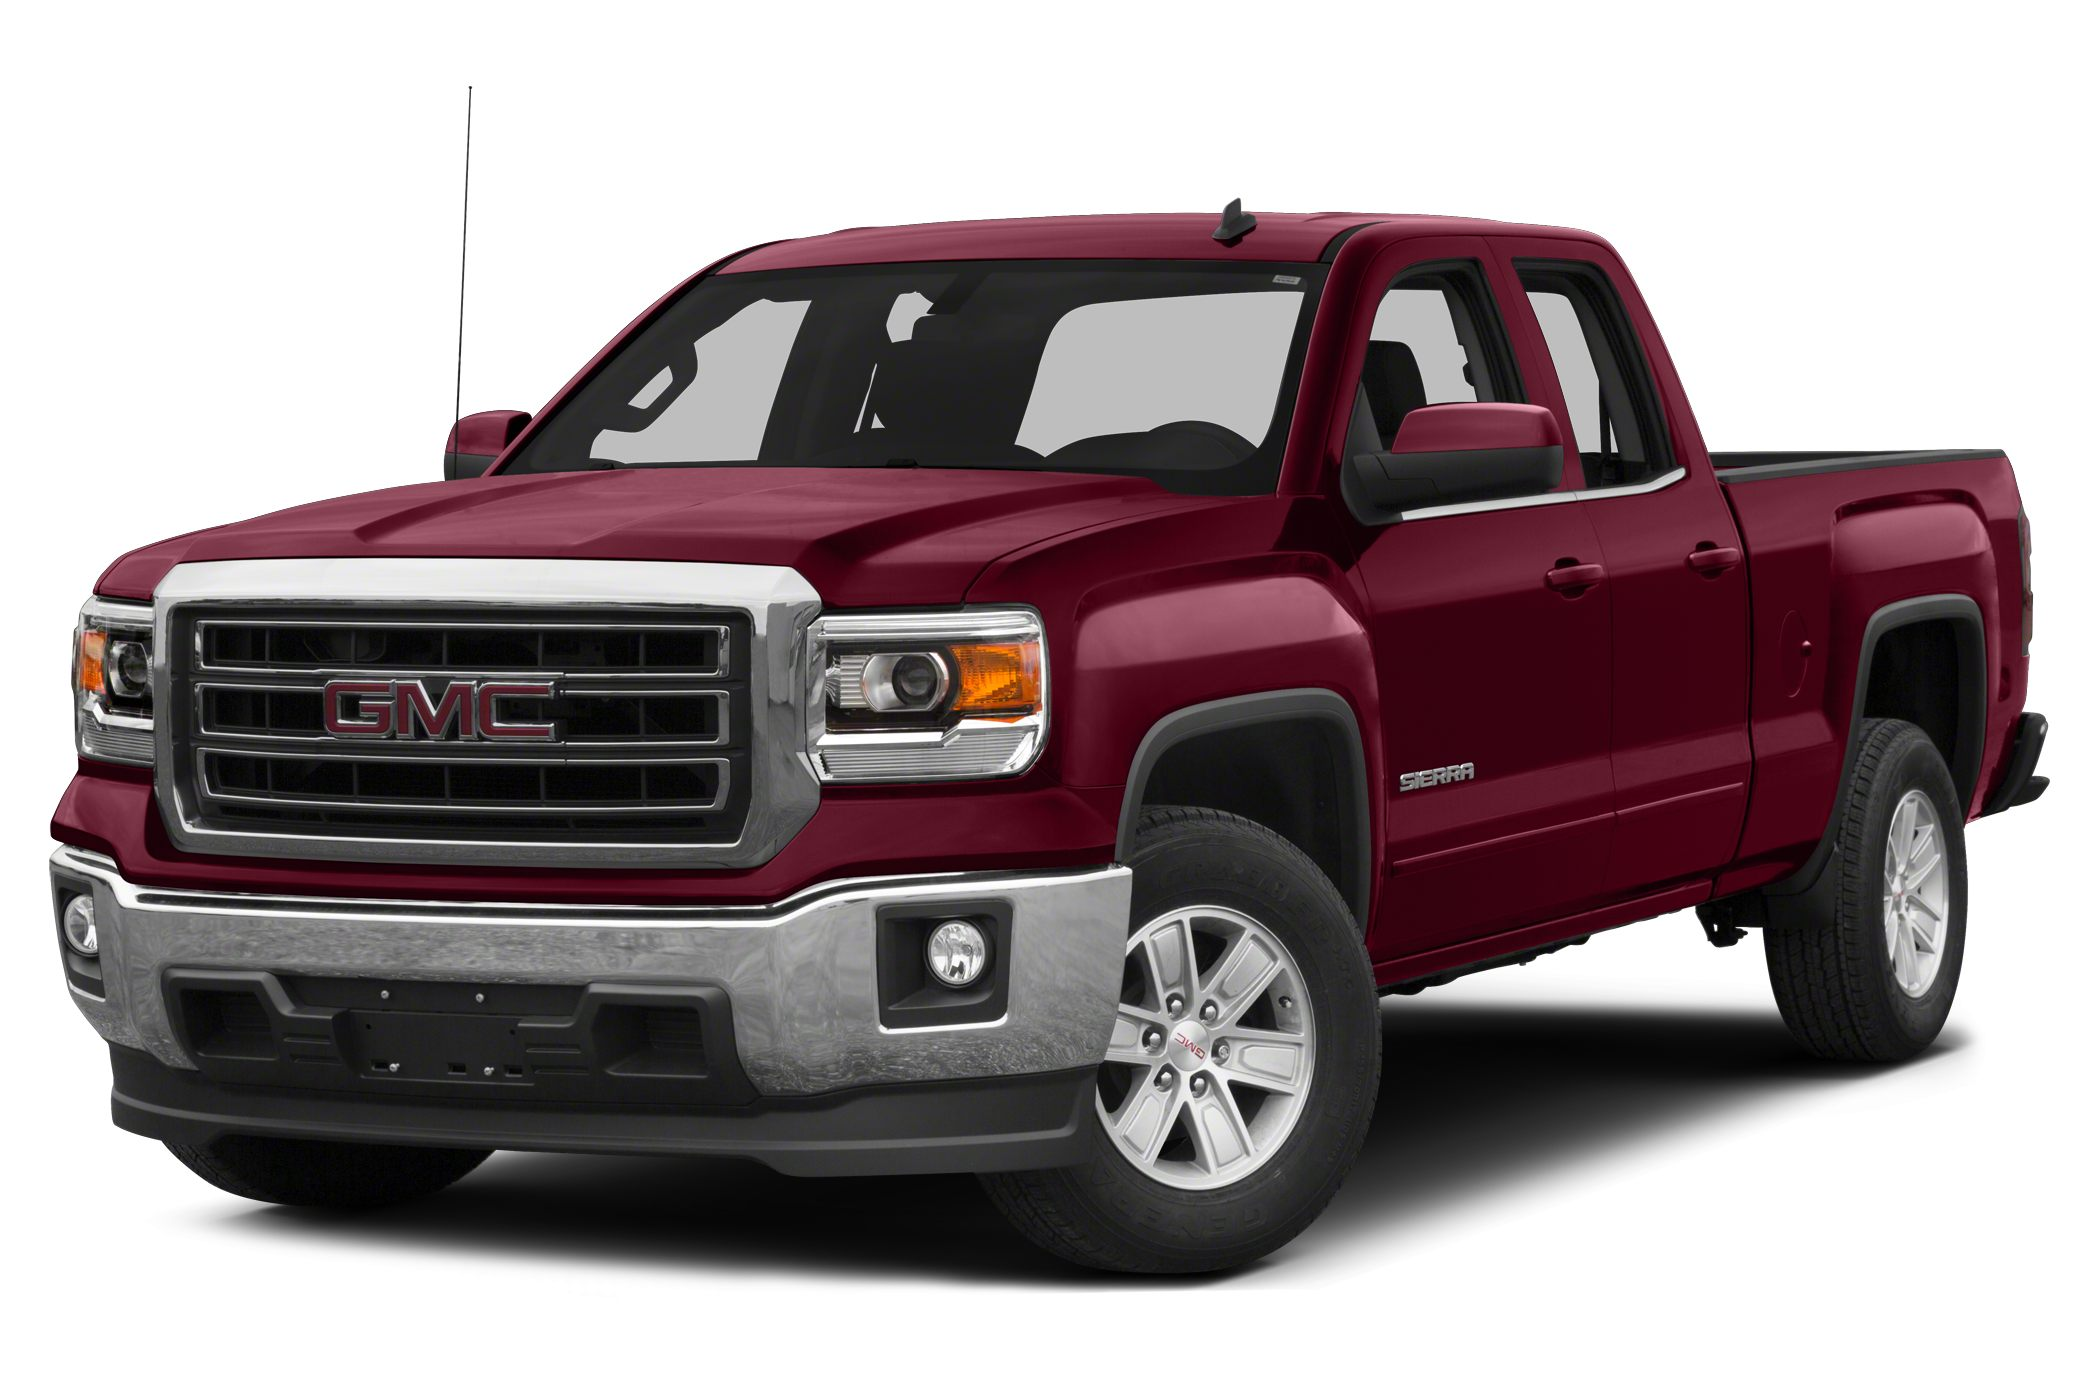 2015 GMC Sierra 1500 SLE Crew Cab Pickup for sale in Neosho for $46,485 with 0 miles